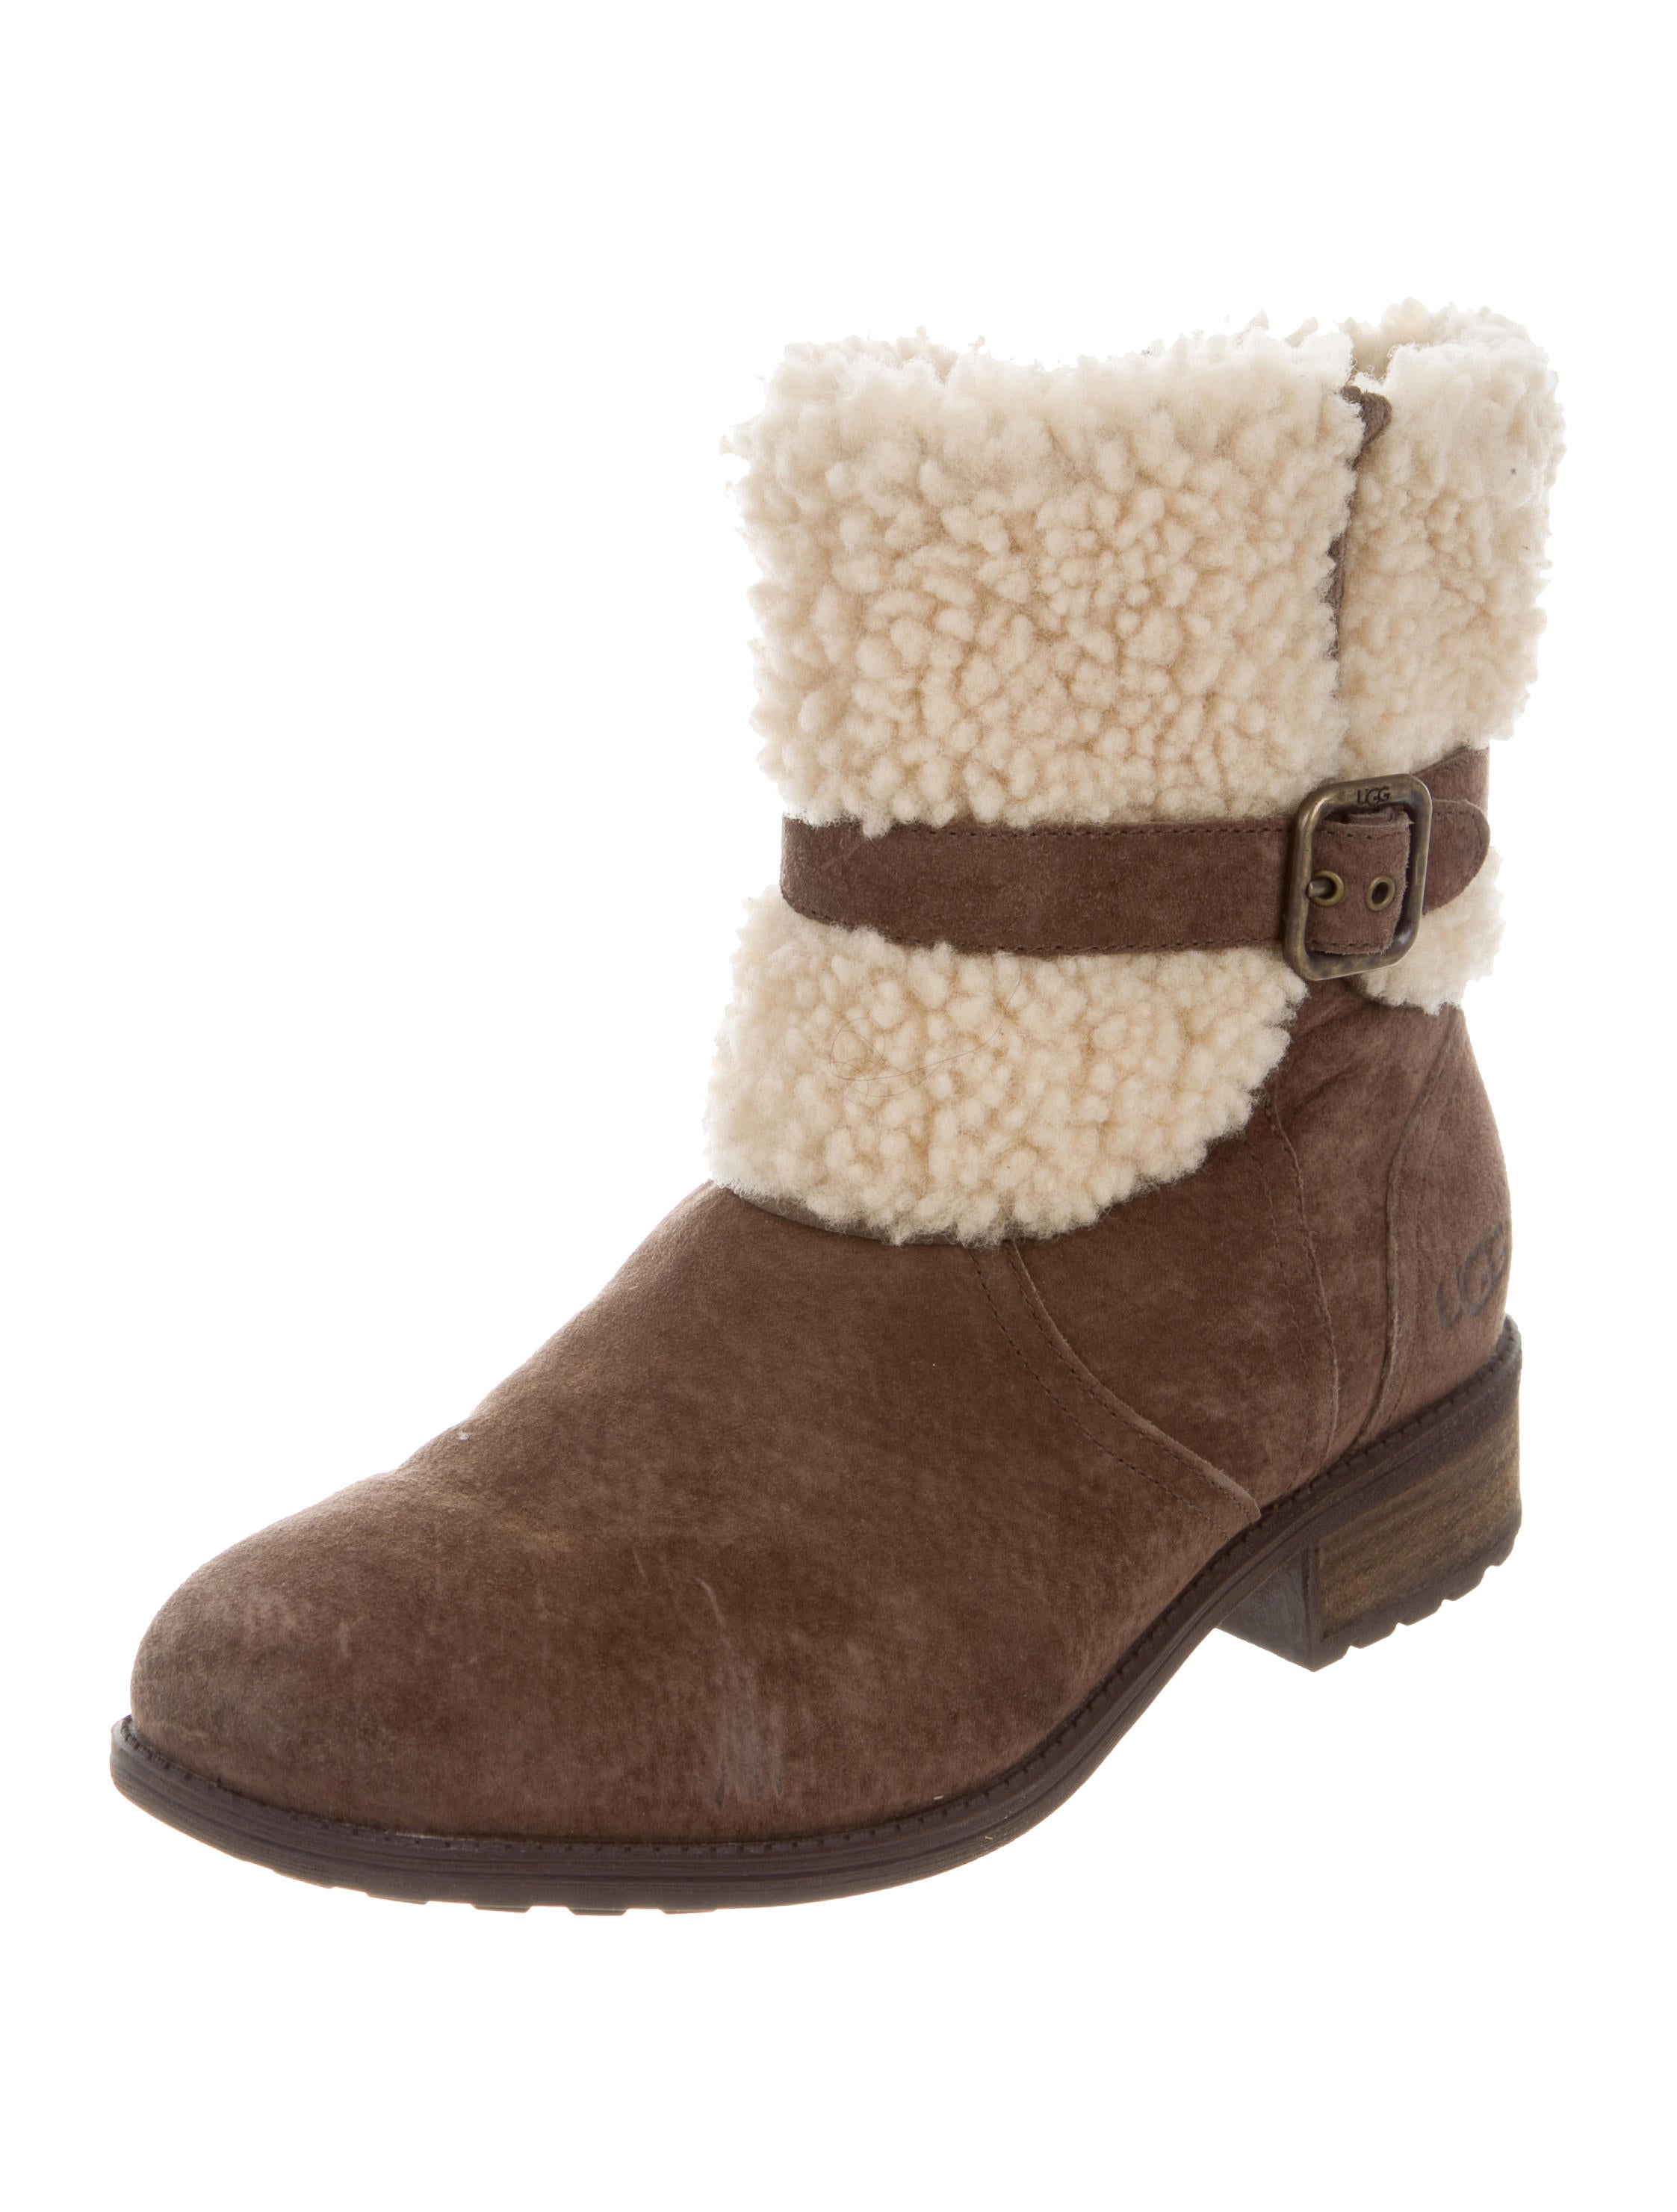 ugg australia suede ankle boots shoes wuugg21095 the